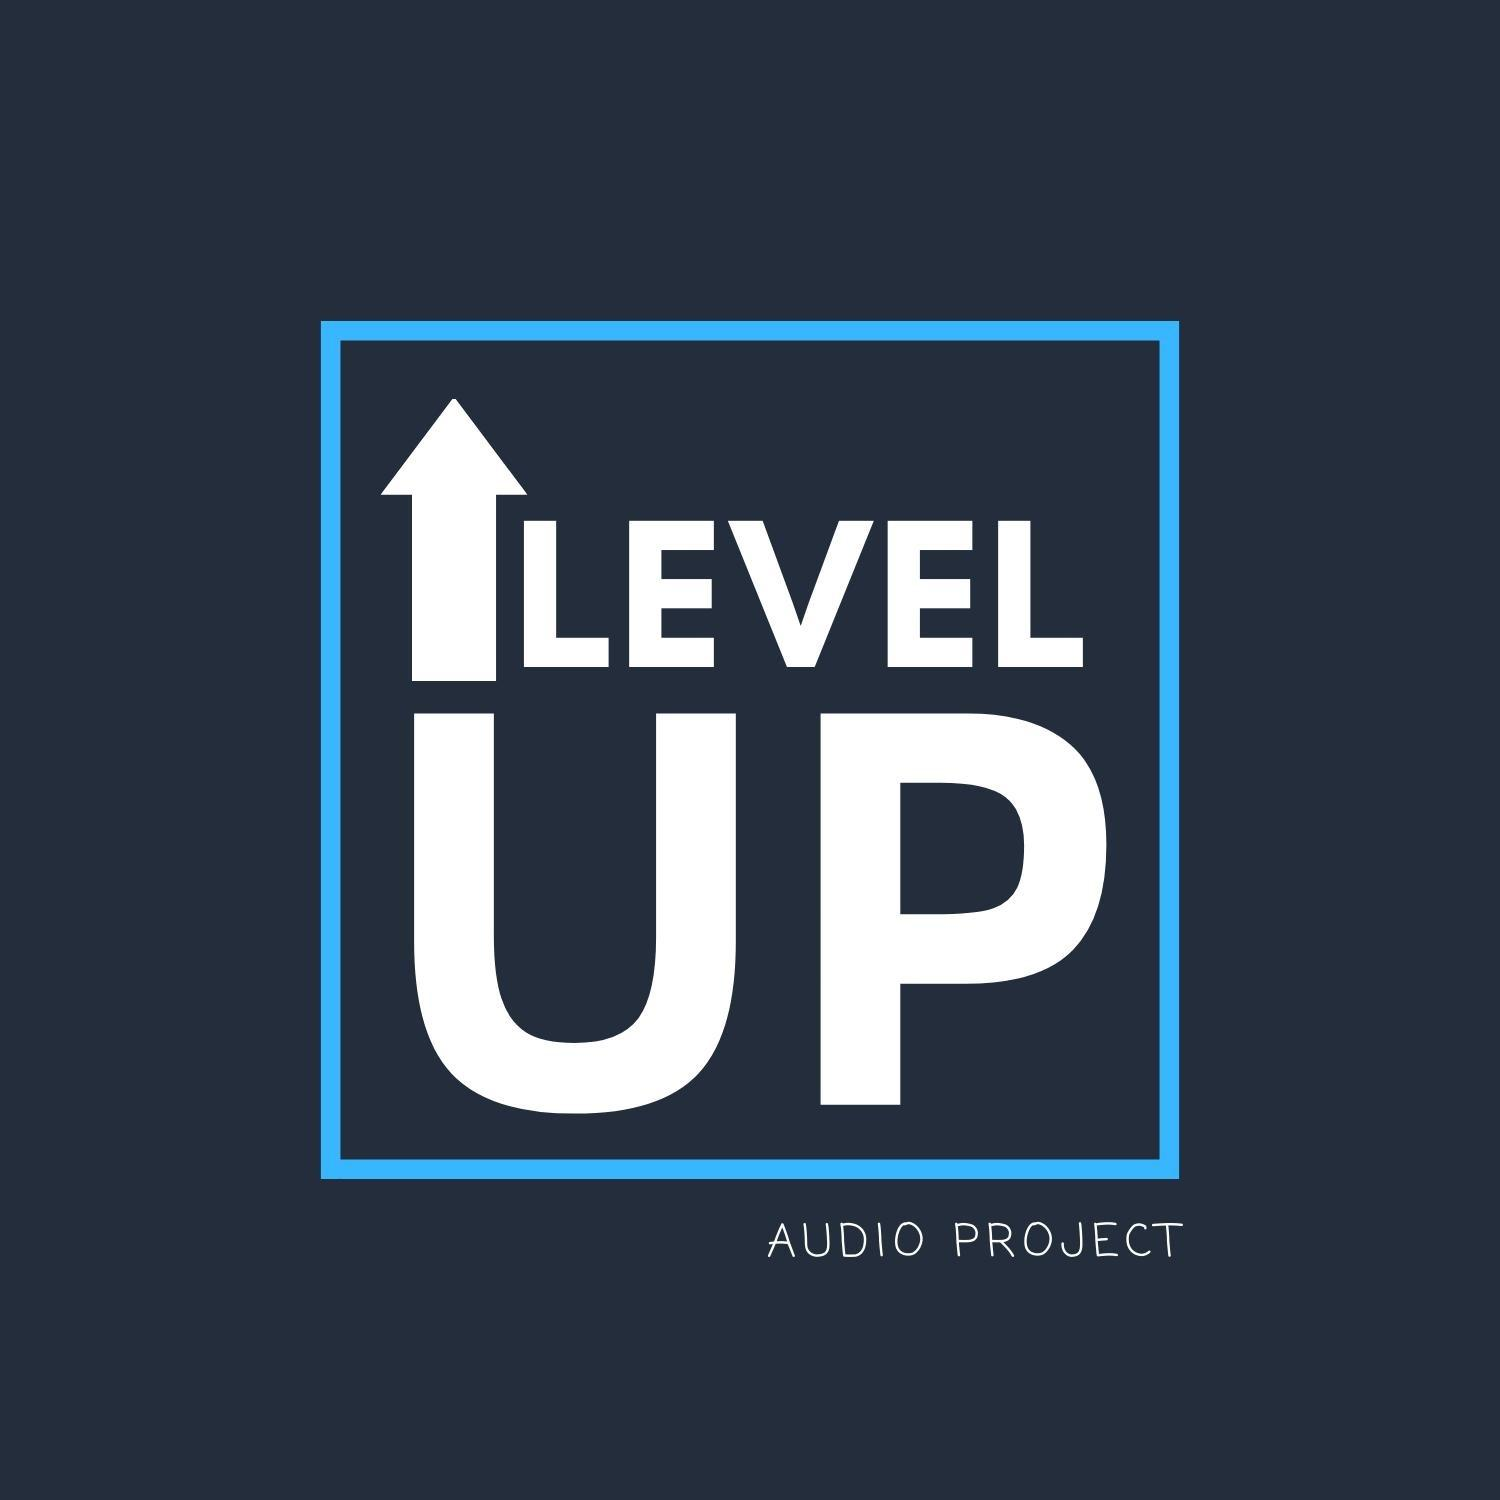 Level Up Audio Project